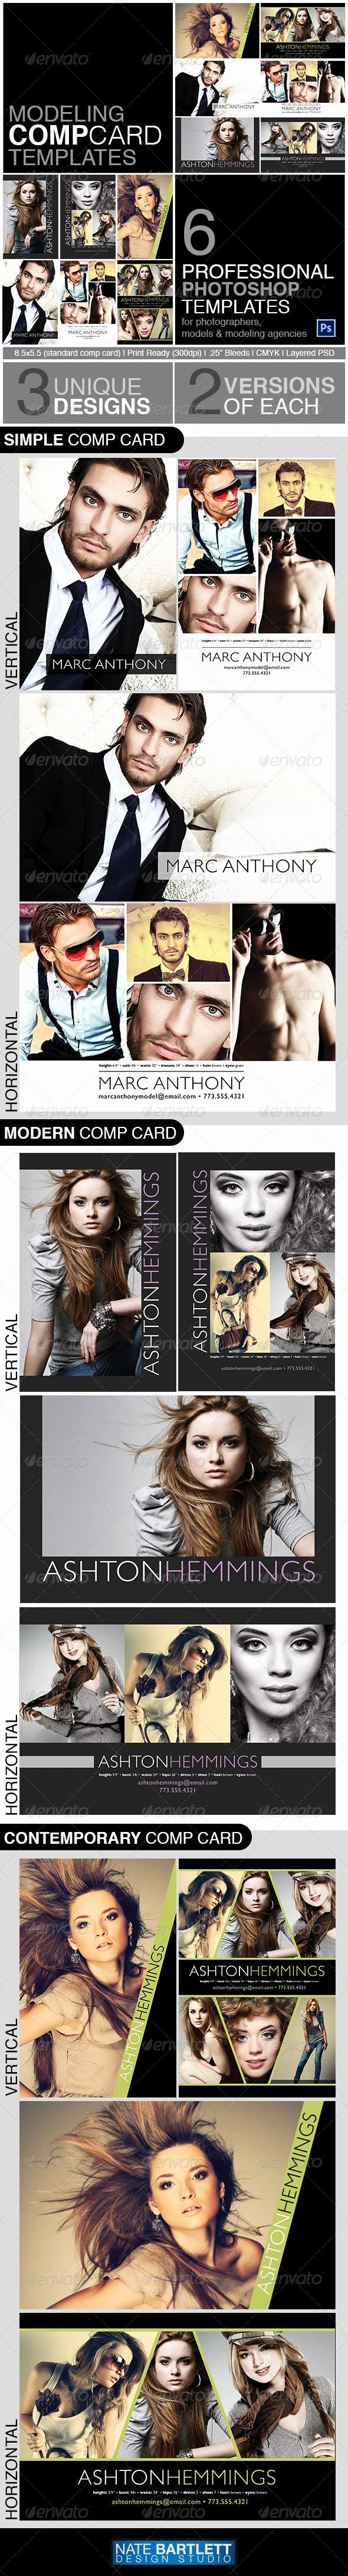 Model Comp Card Template Lovely Model P Card Template Kit by Natedilli